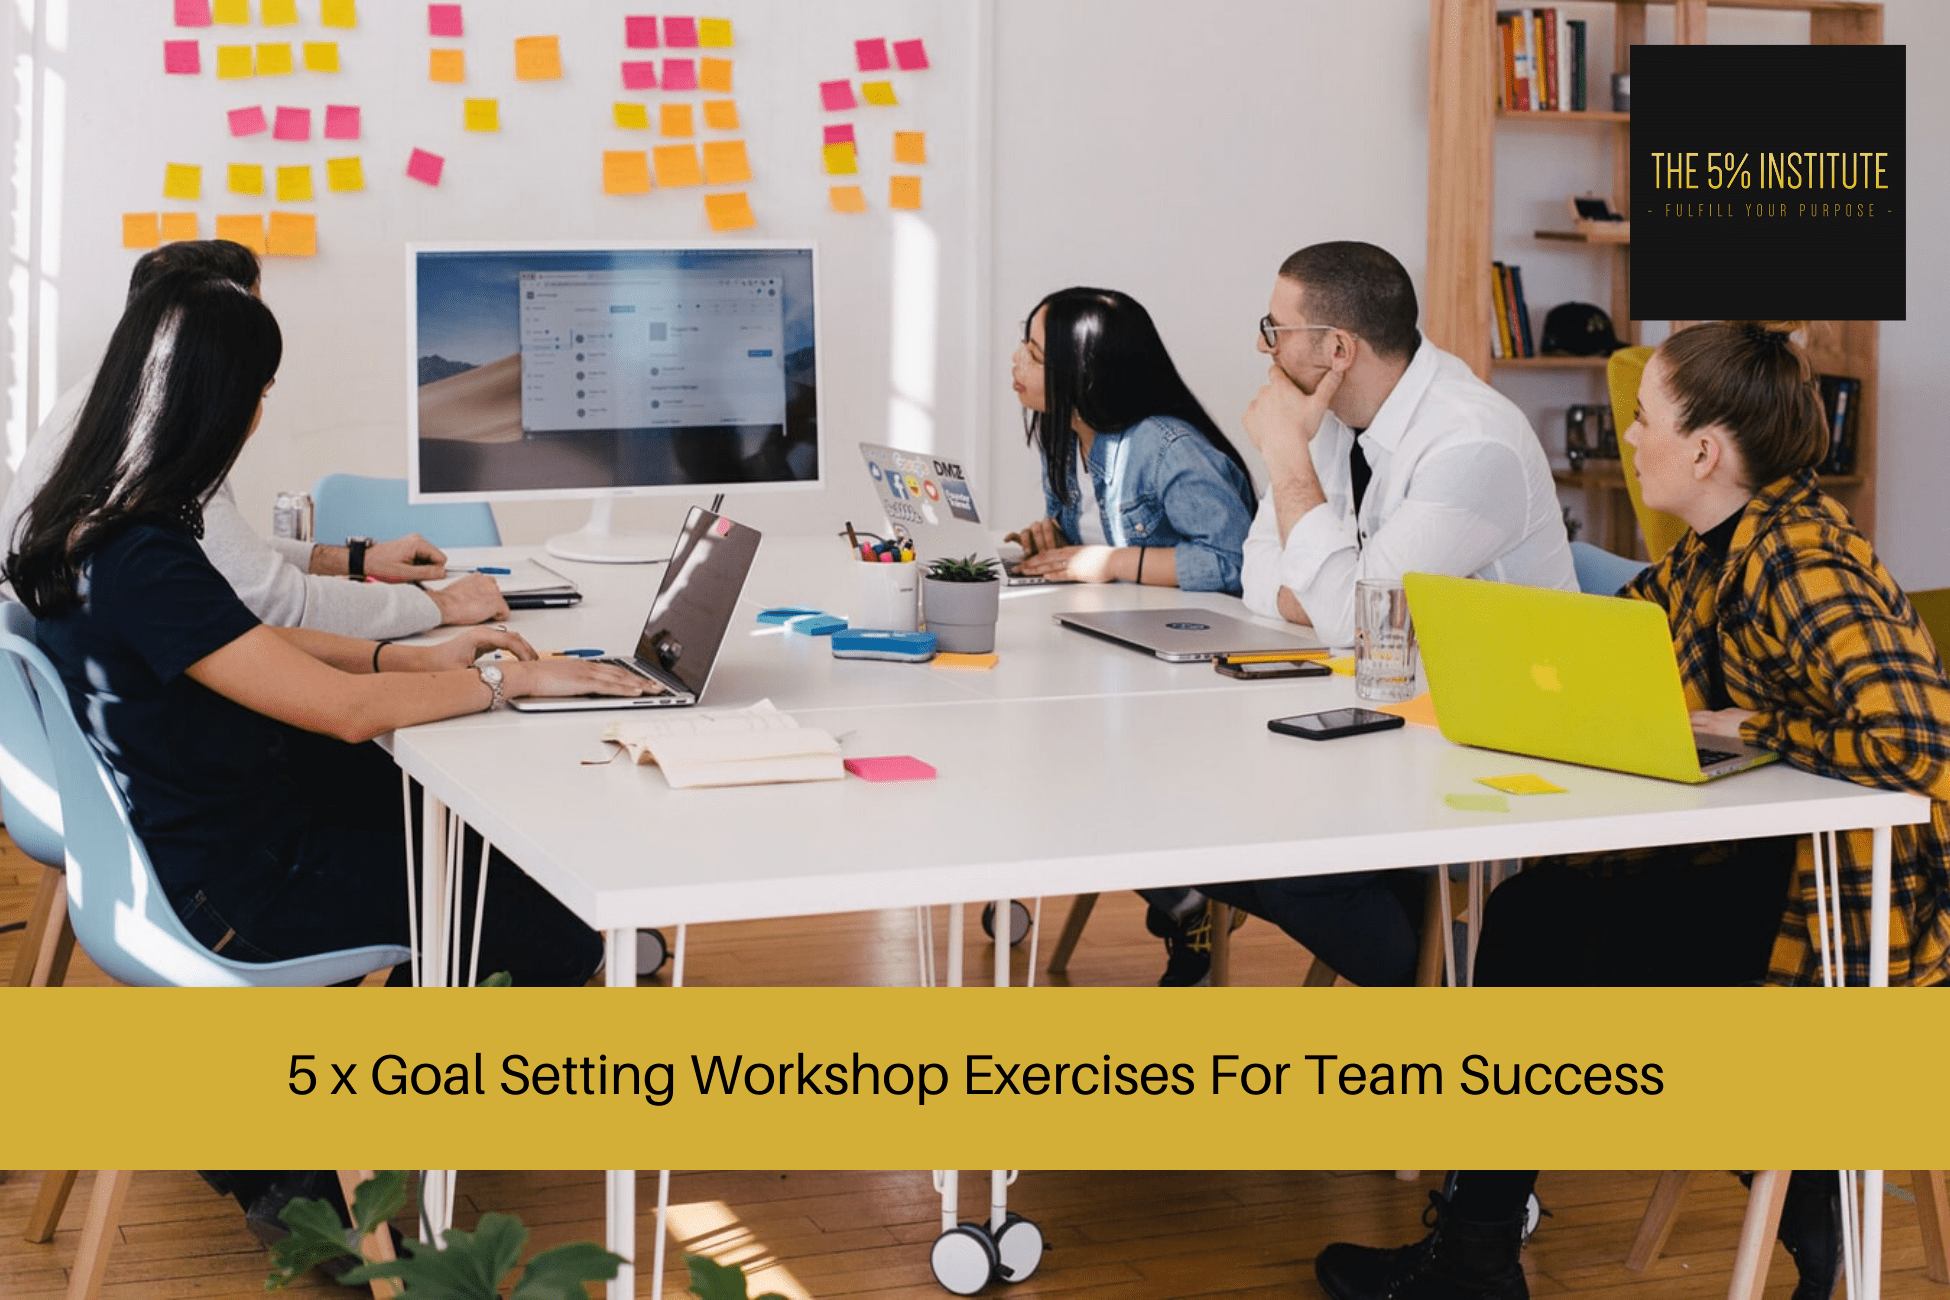 Goal Setting Workshop Exercises